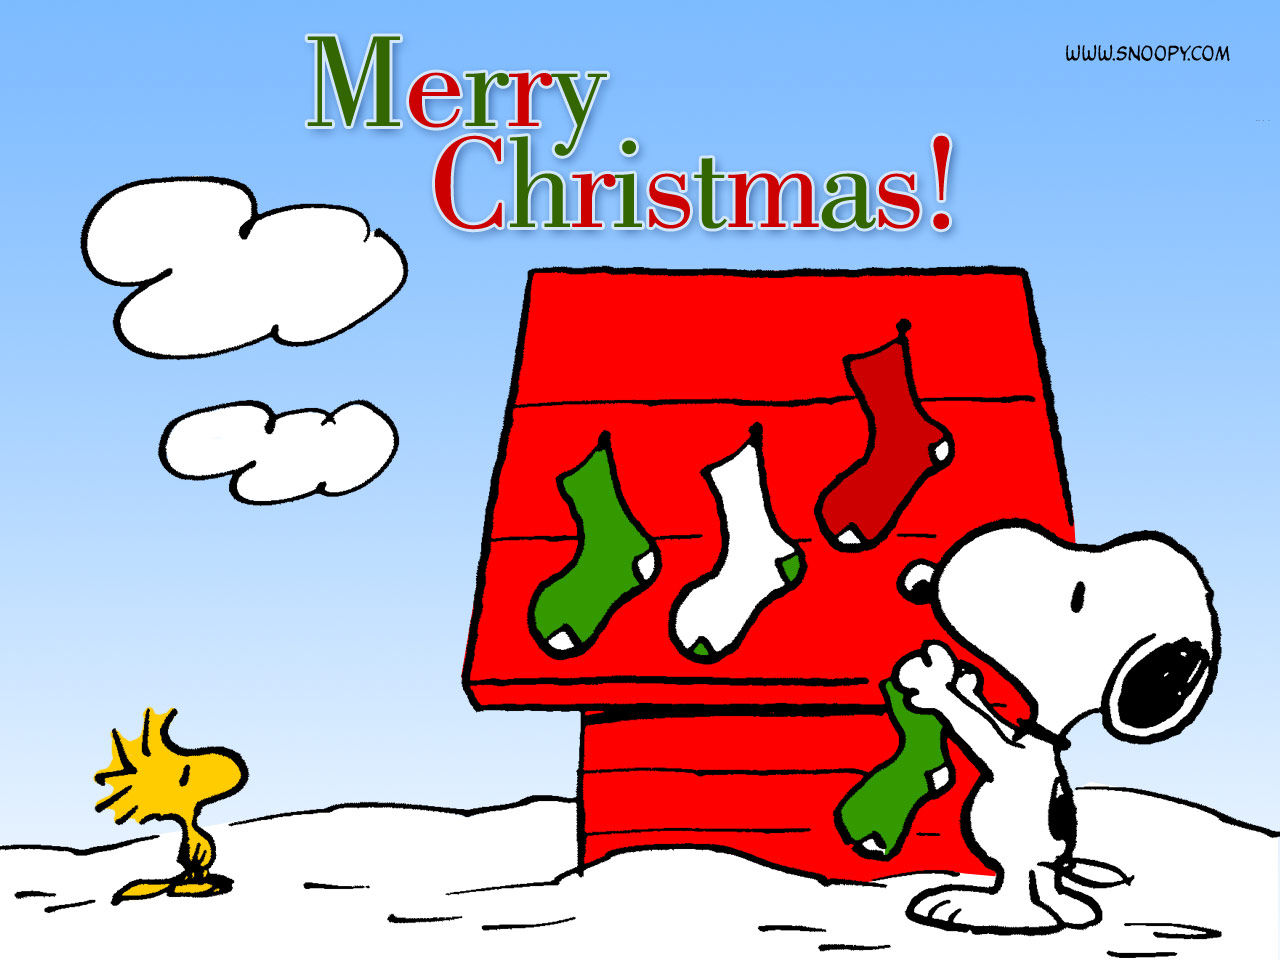 snoopy merry christmas image quote - Snoopy Merry Christmas Images